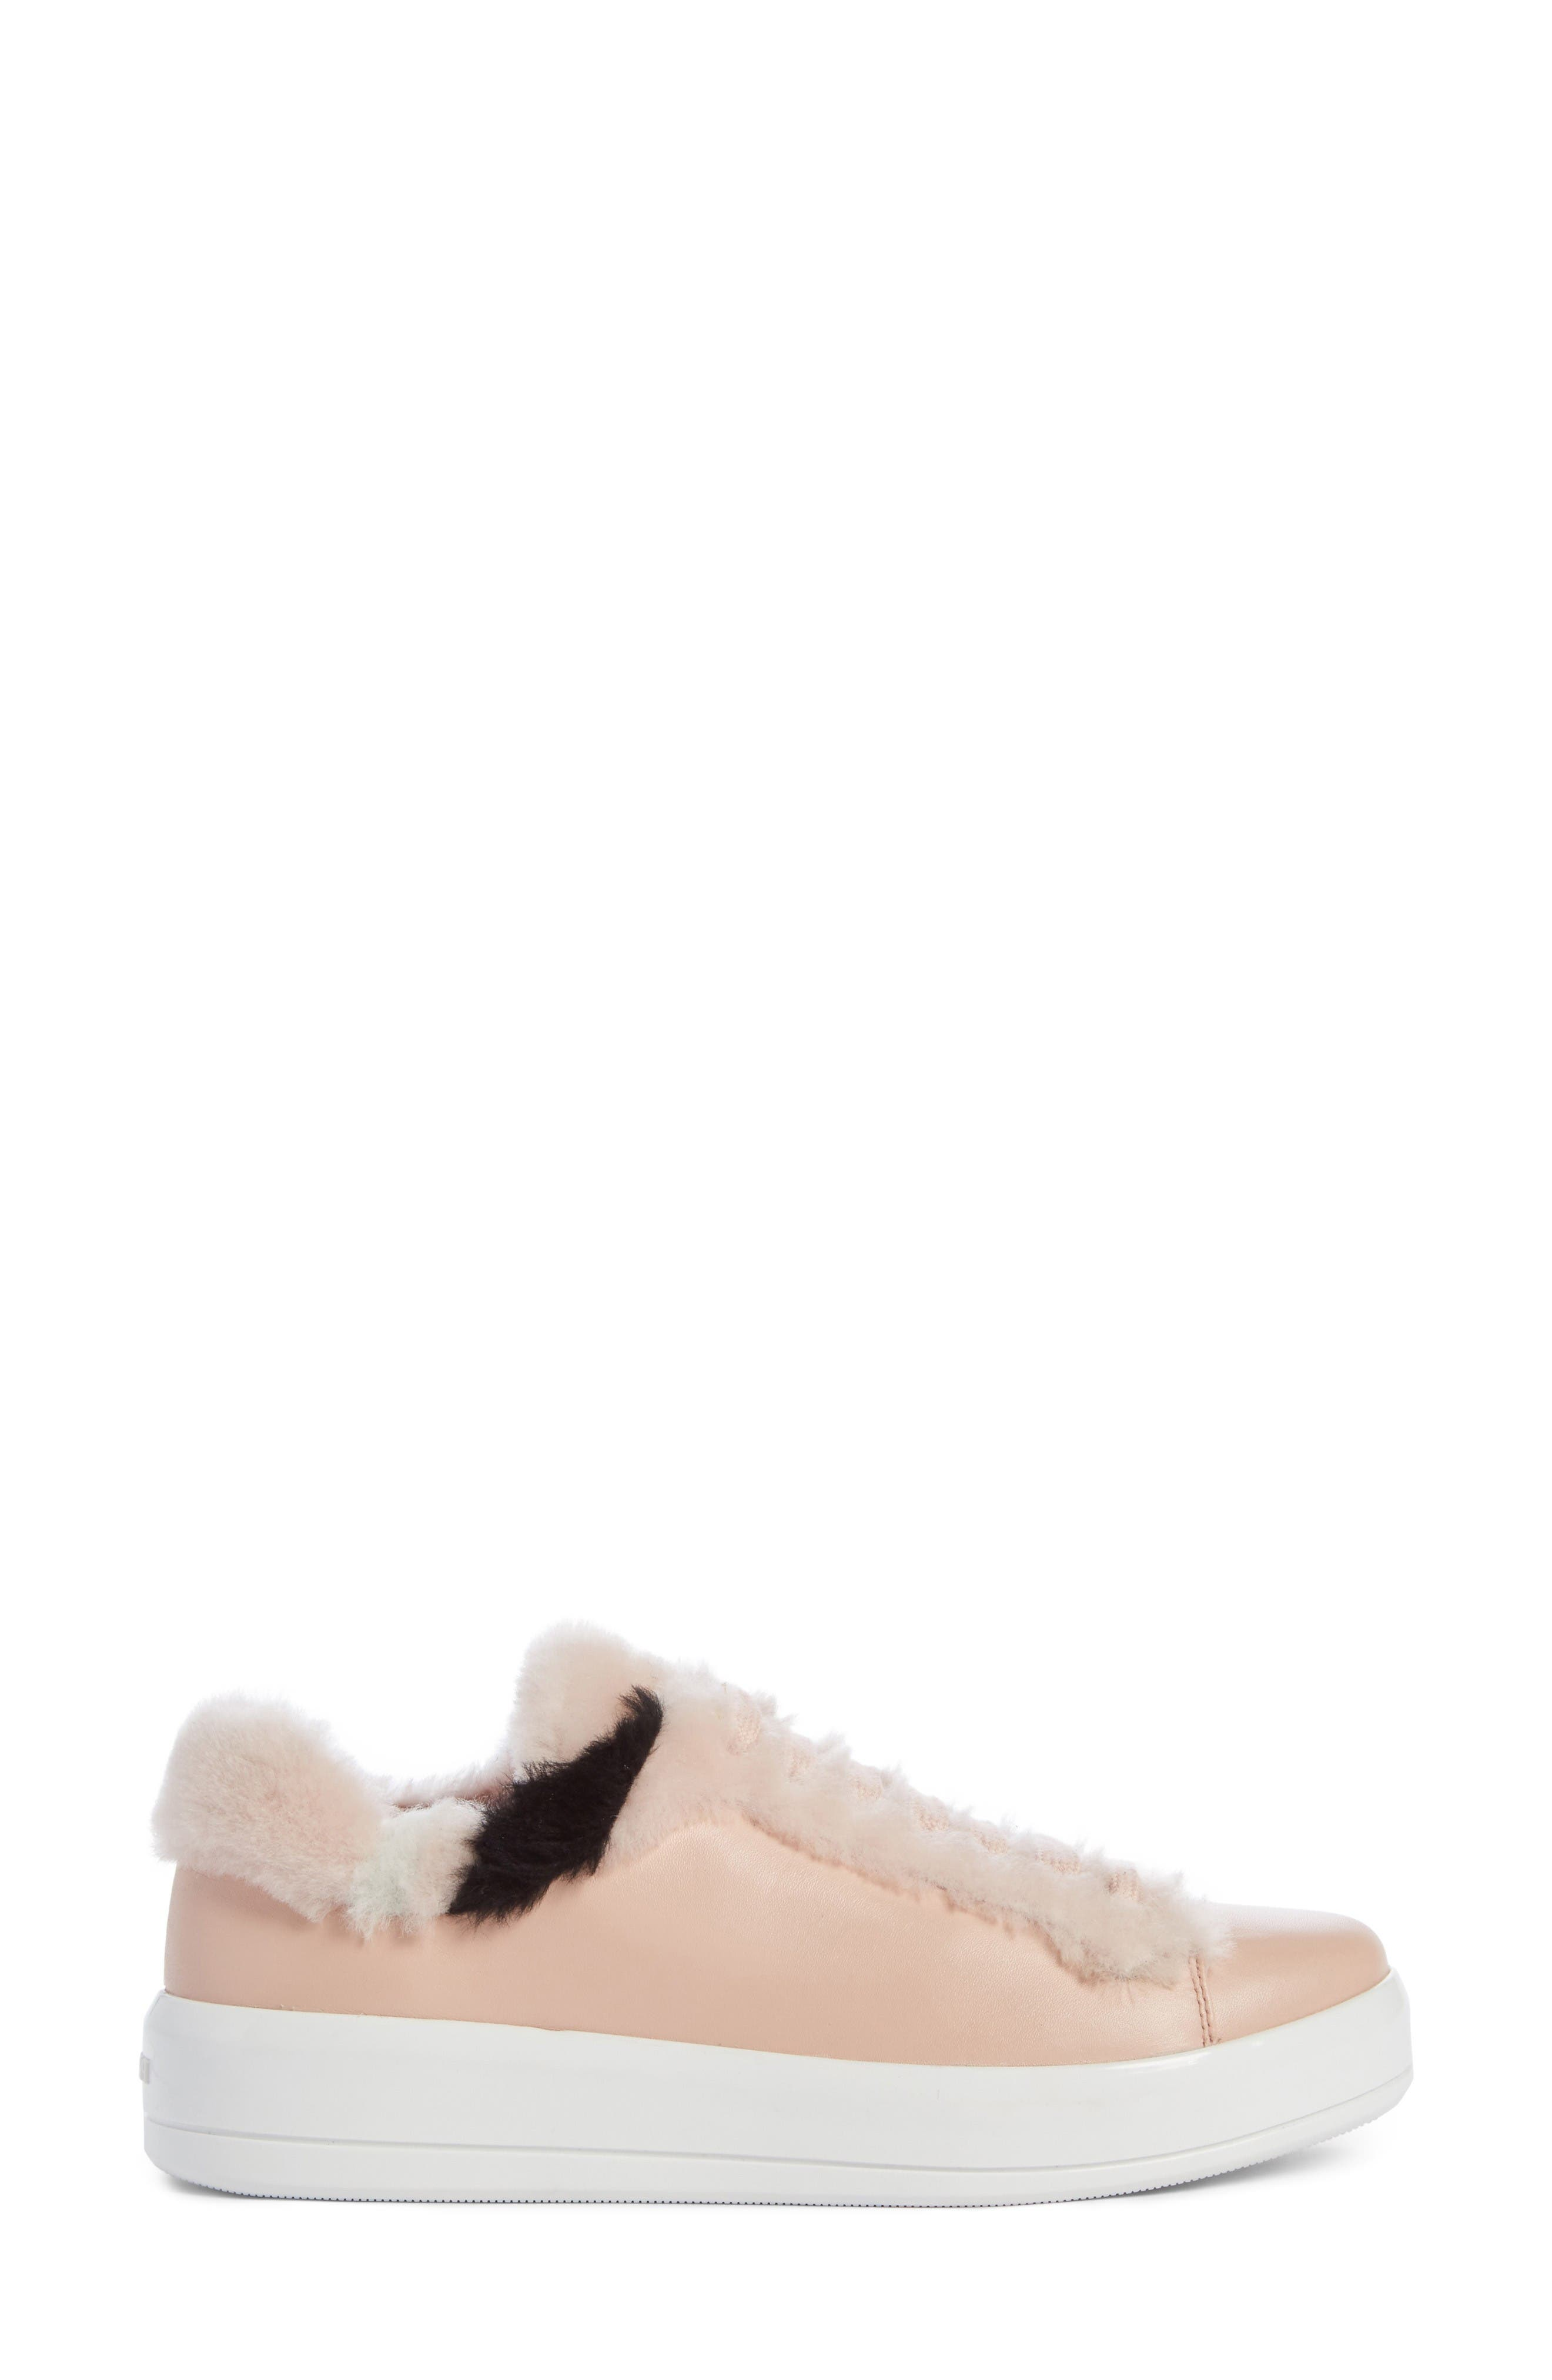 Genuine Shearling Trim Platform Sneaker,                             Alternate thumbnail 4, color,                             Pink Leather